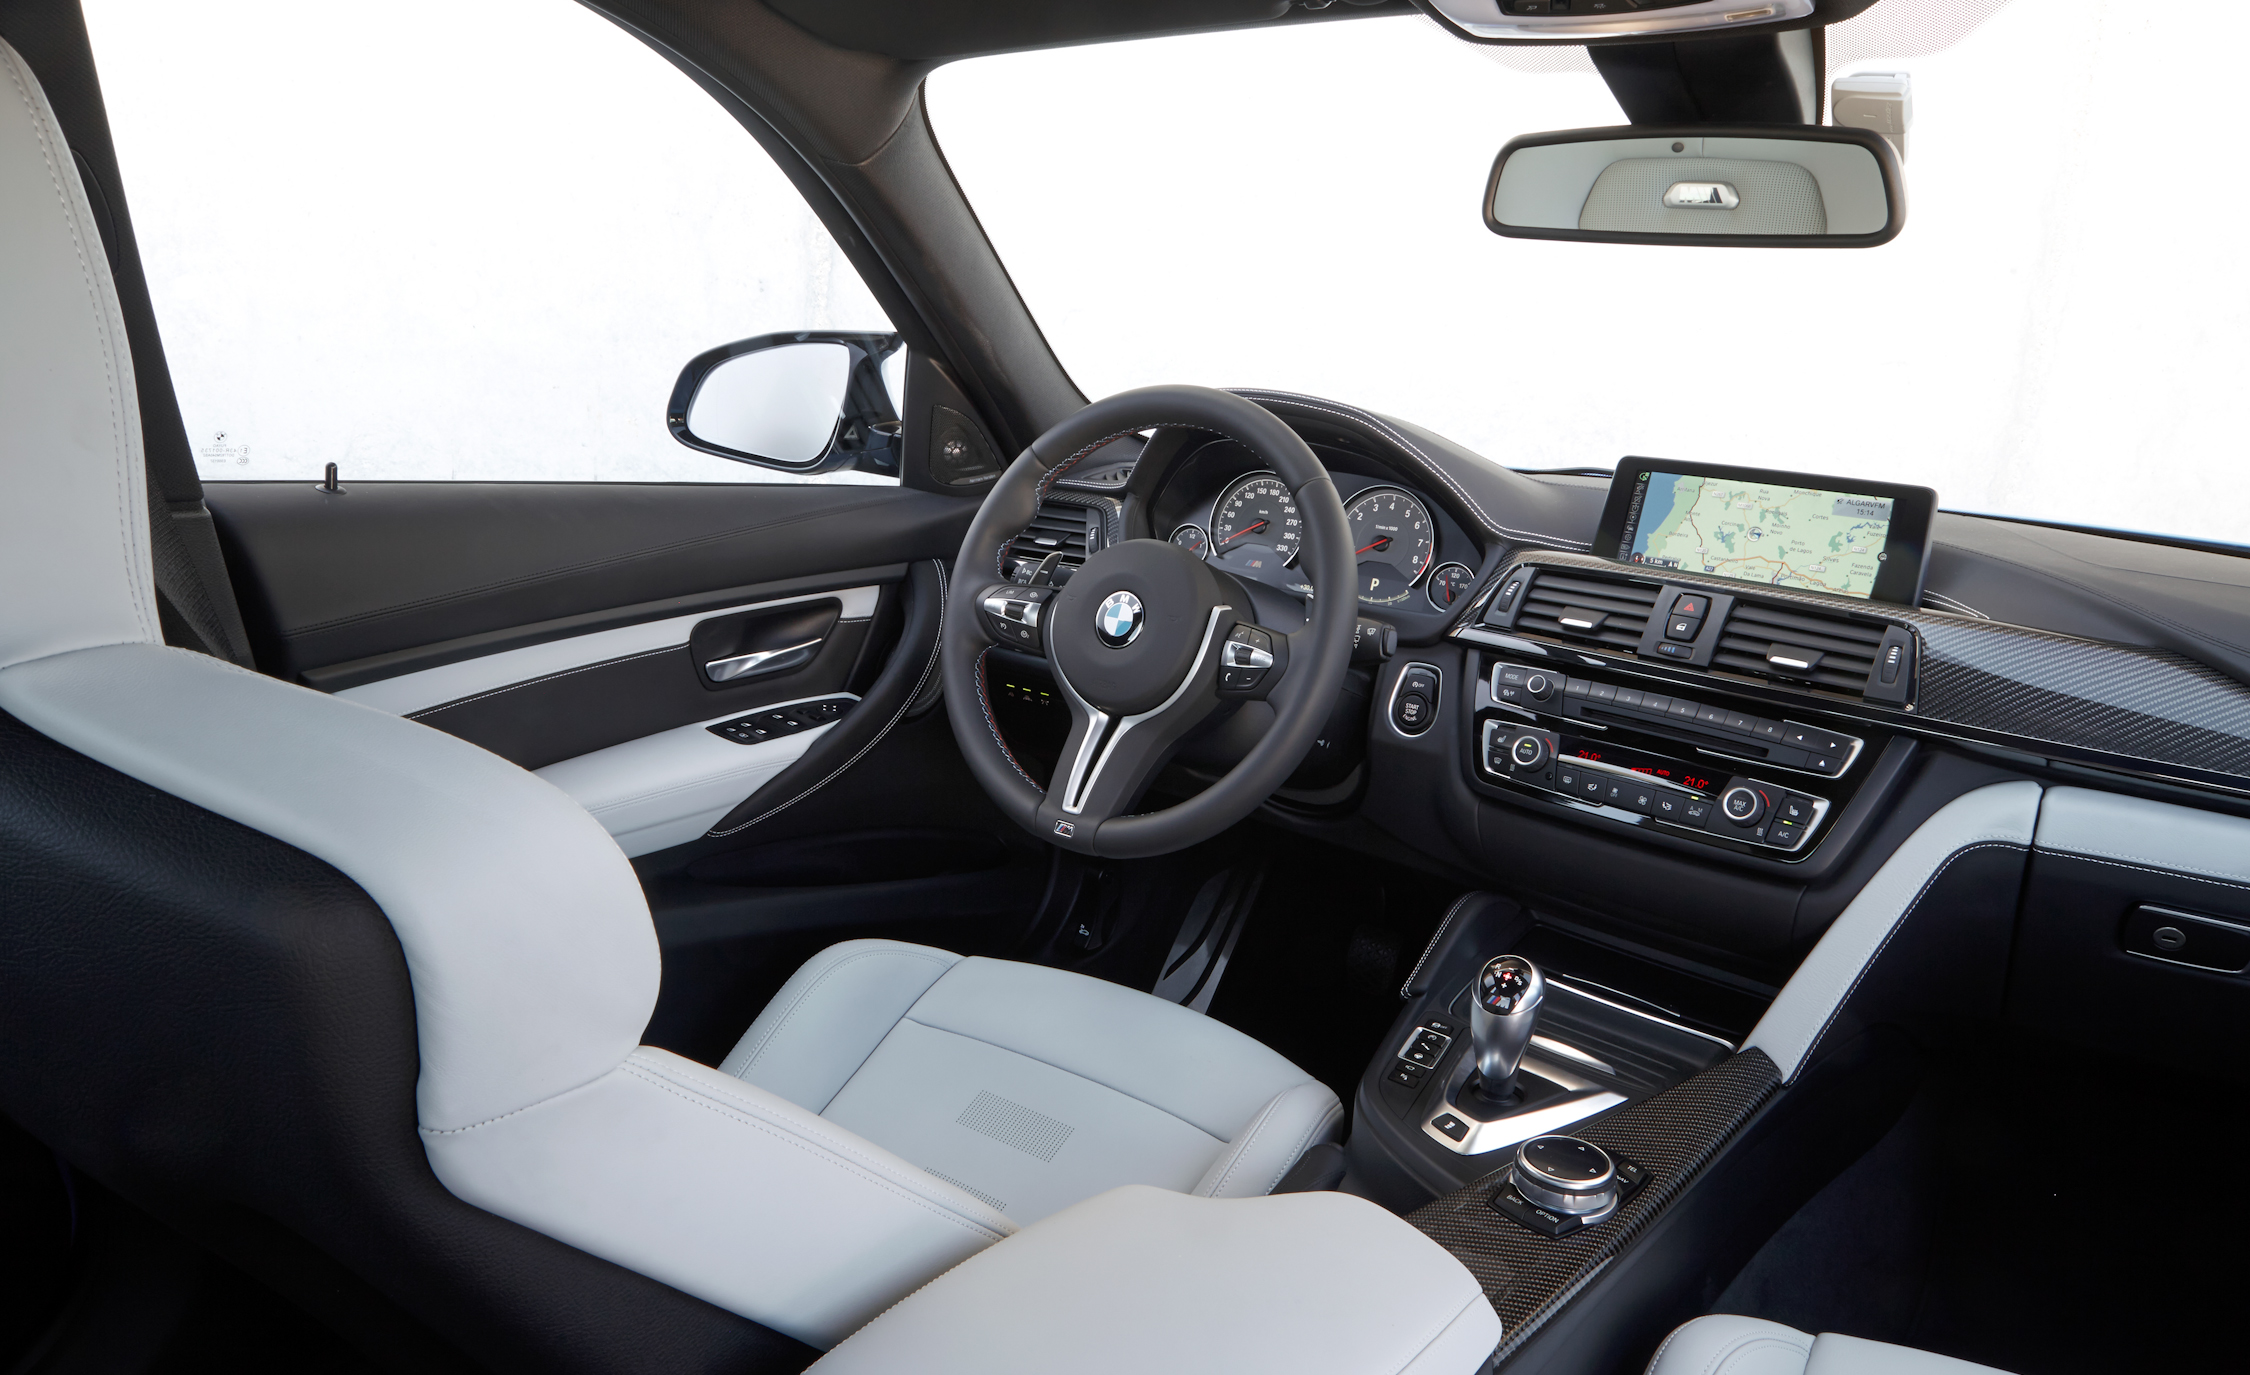 2015 BMW M3 Interior Cockpit